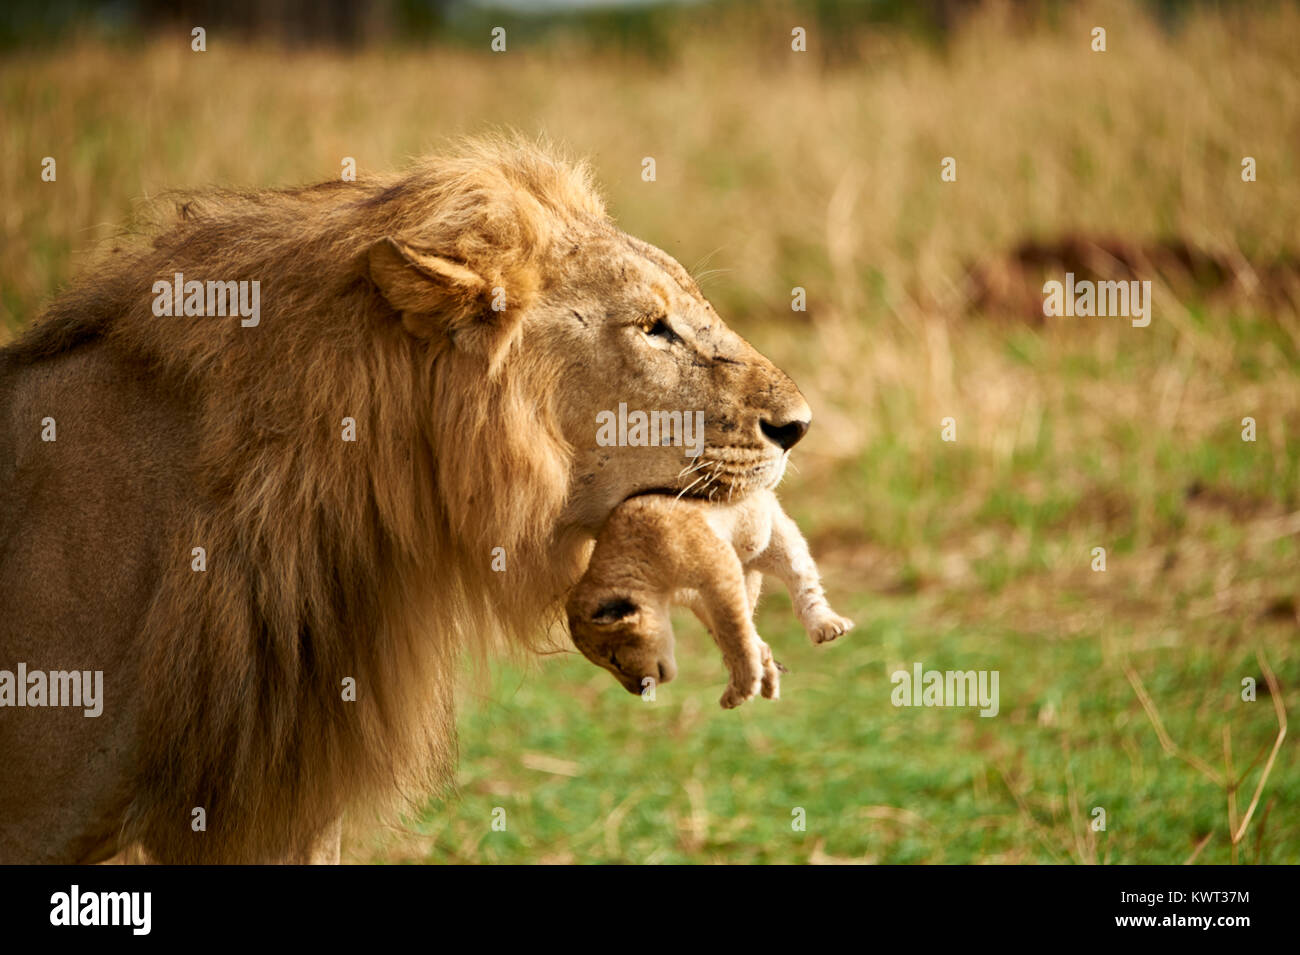 Male lion carrying one of its cubs - (rare occurrence) Stock Photo